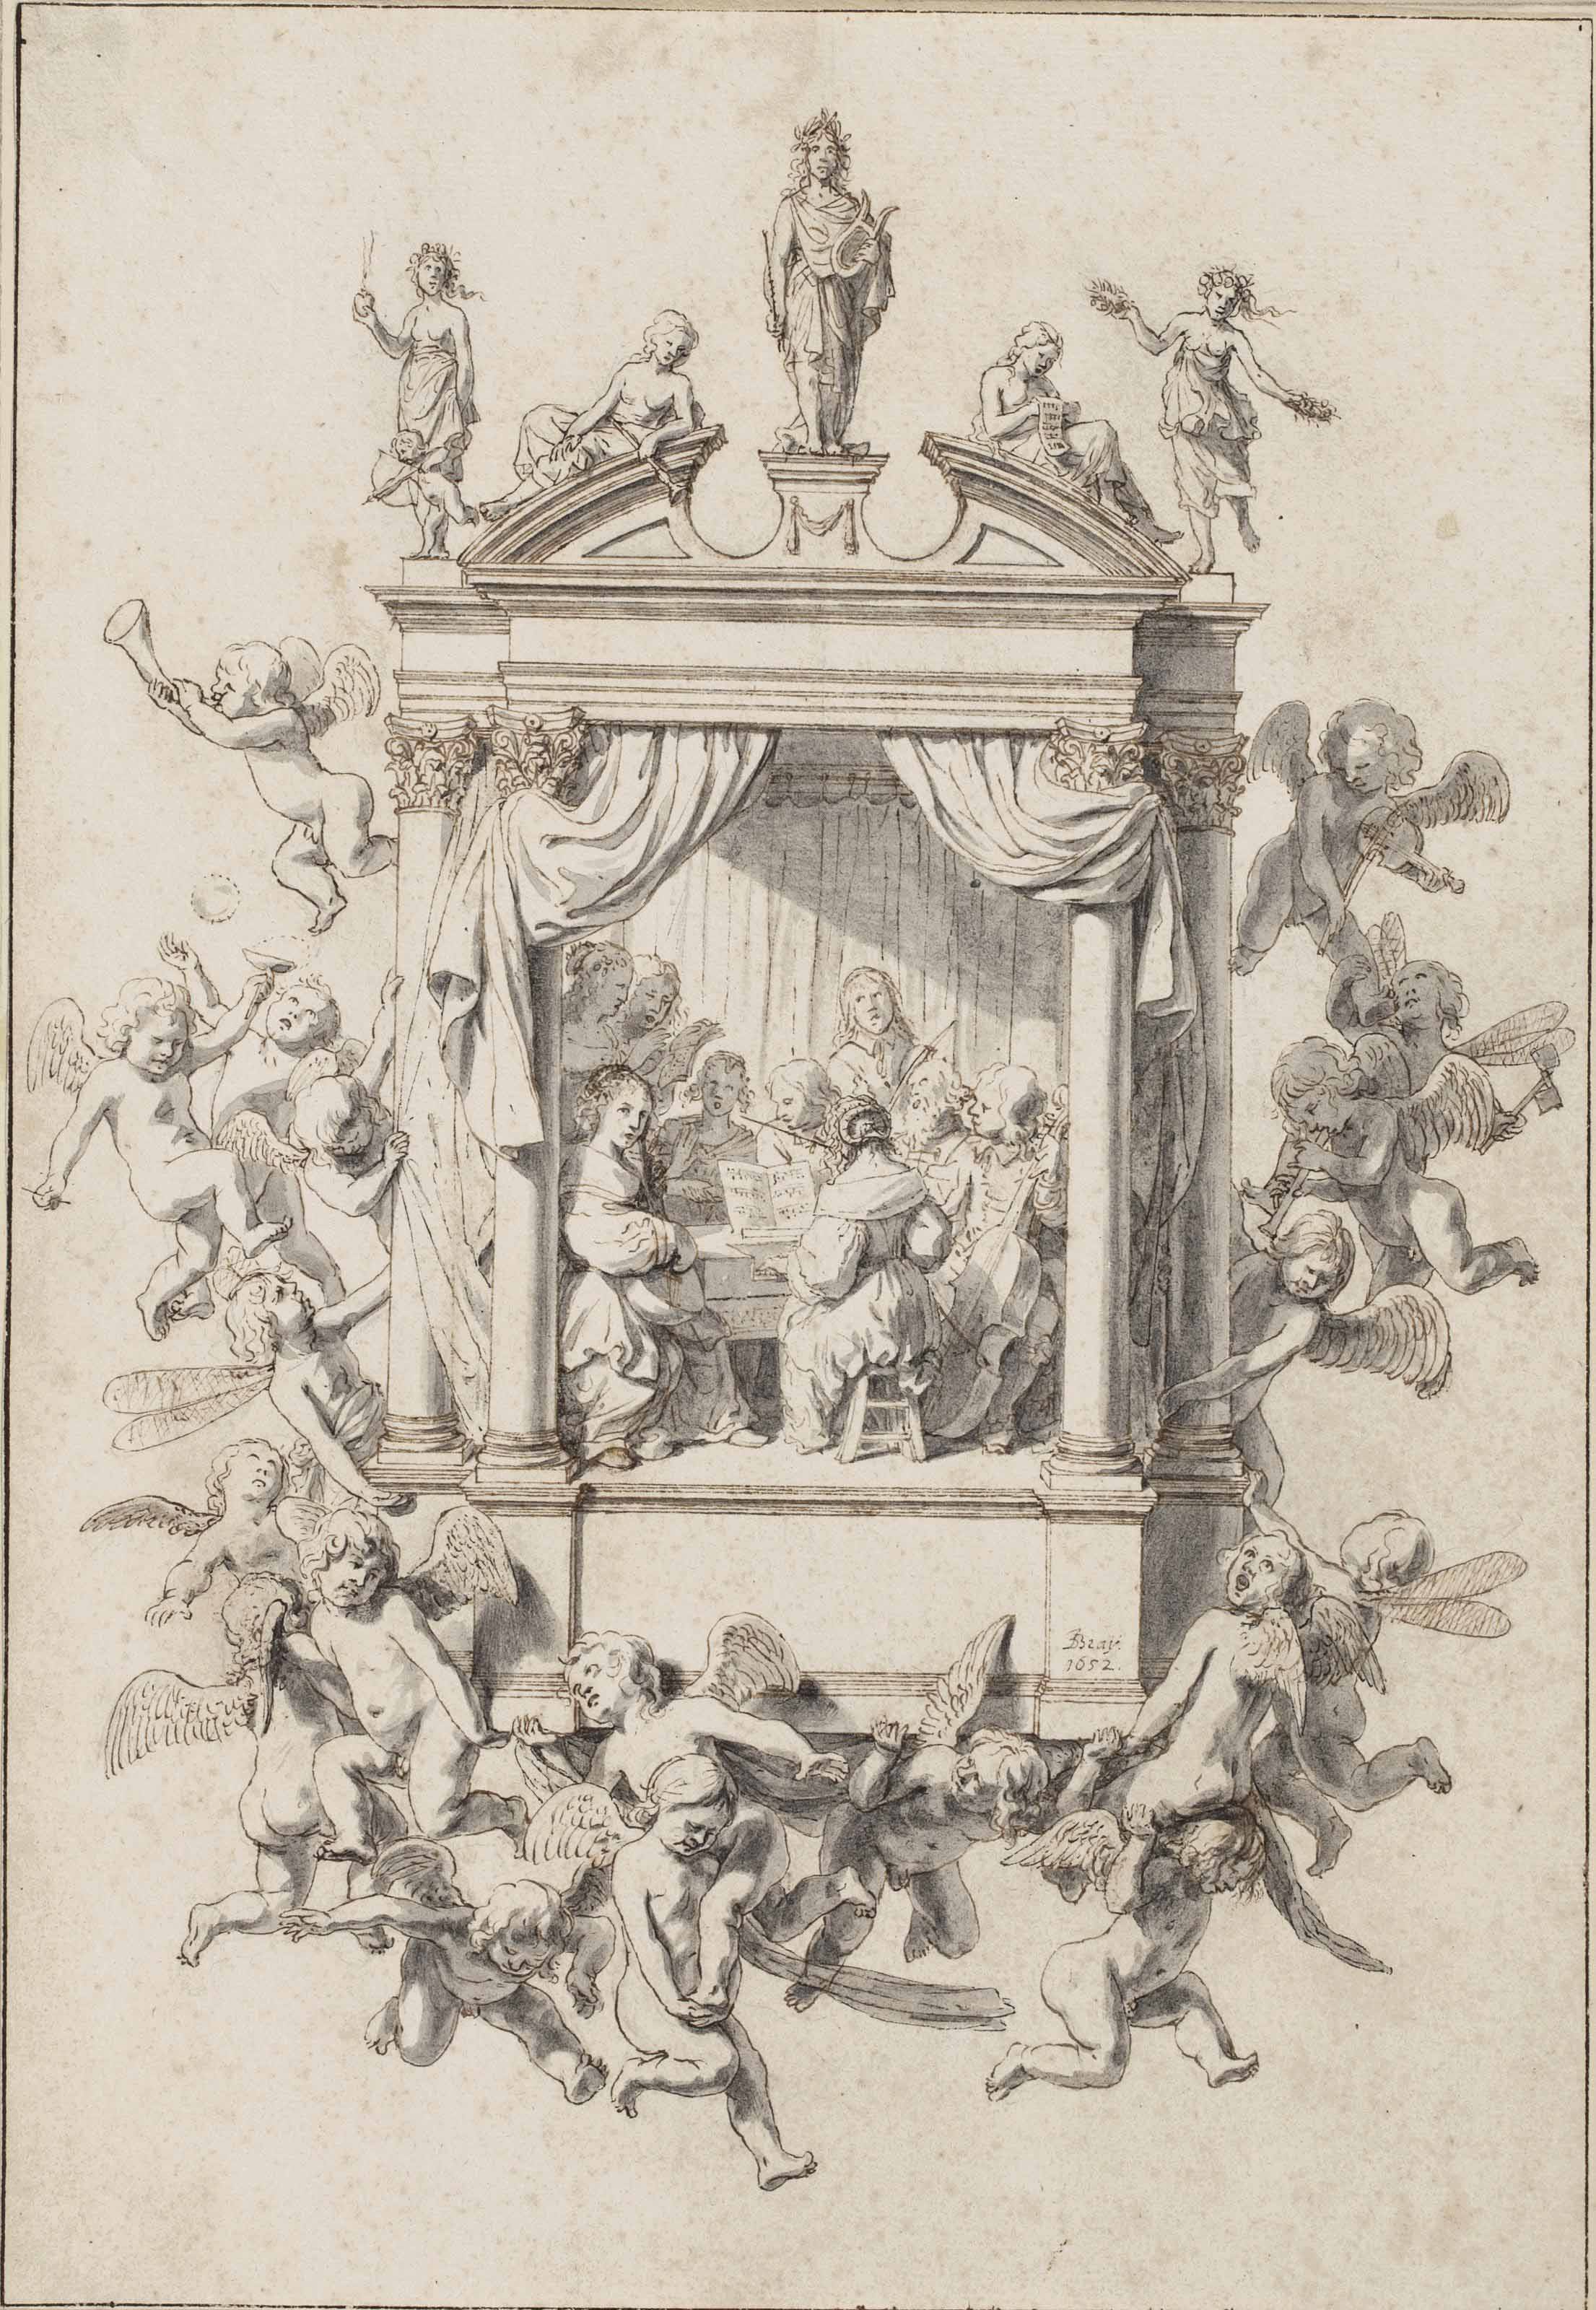 Design for a musical emblem: A chamber orchestra performing within an architectural surround, accompanied by putti, Apollo and the Muses